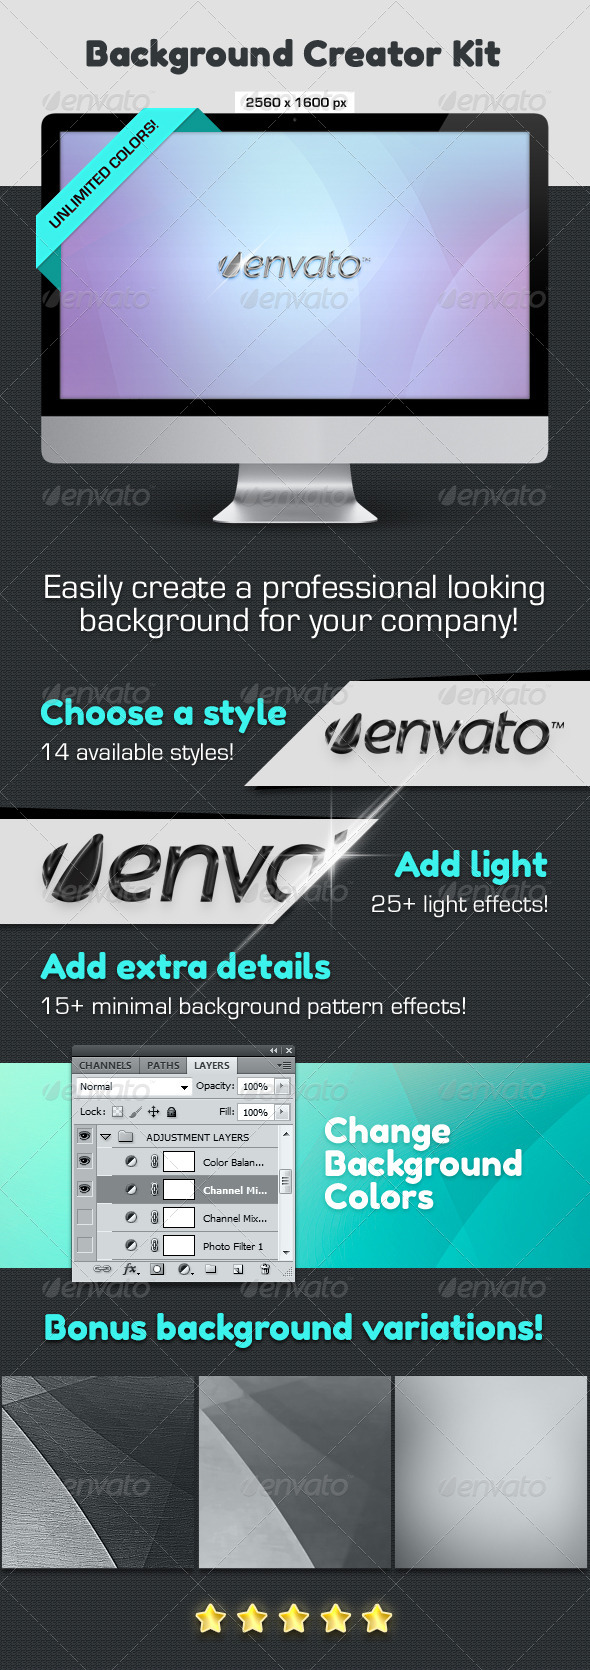 Background Creator Kit - Abstract Backgrounds